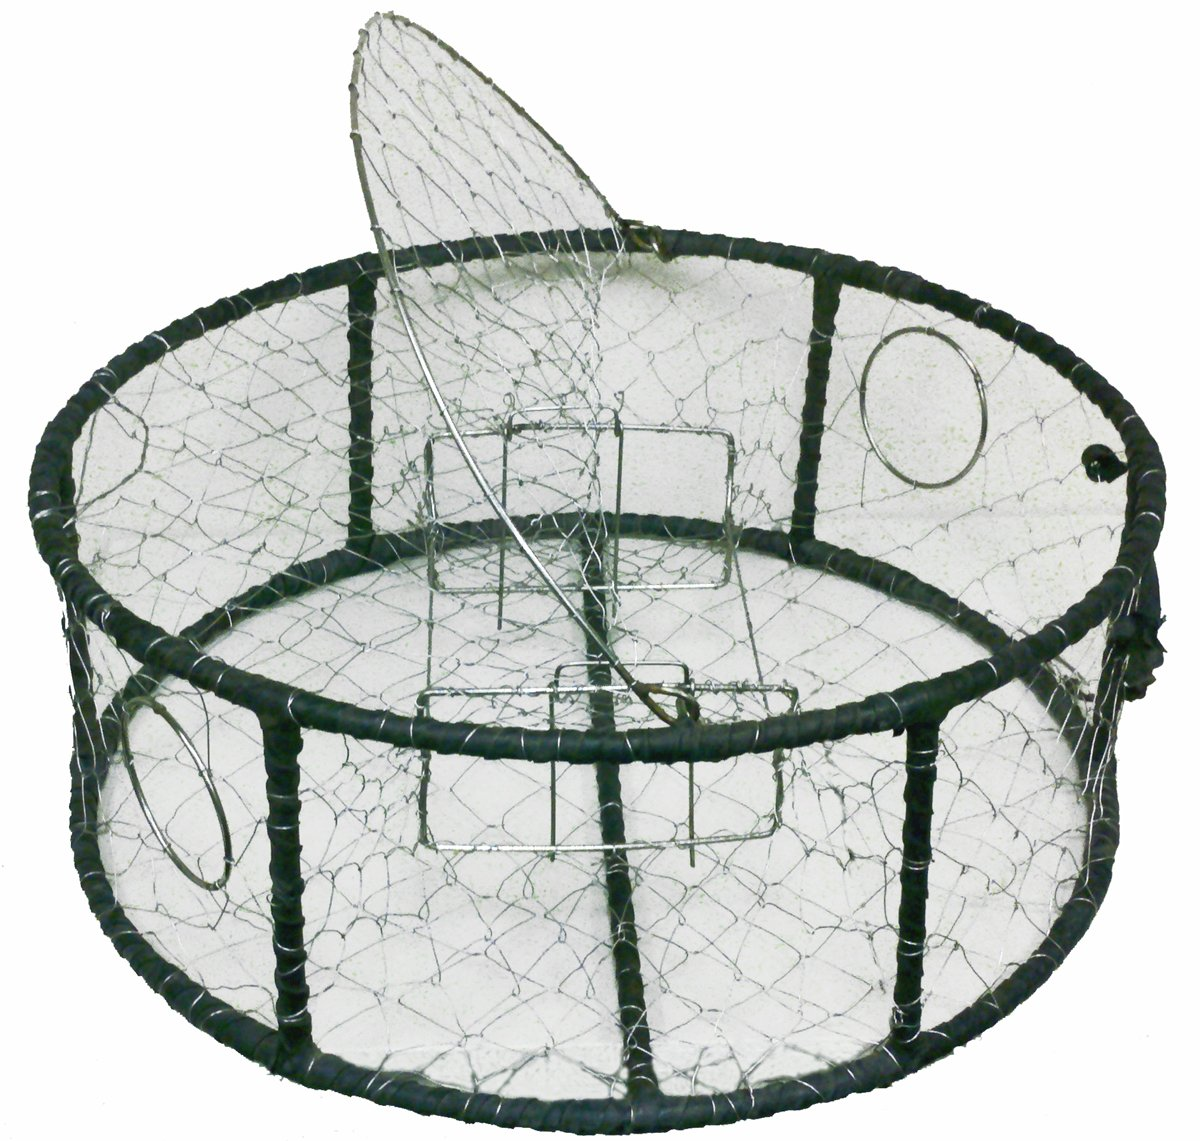 Promar Stainless Steel Mesh Crab Pot Rubber Wrap Rebar by Promar